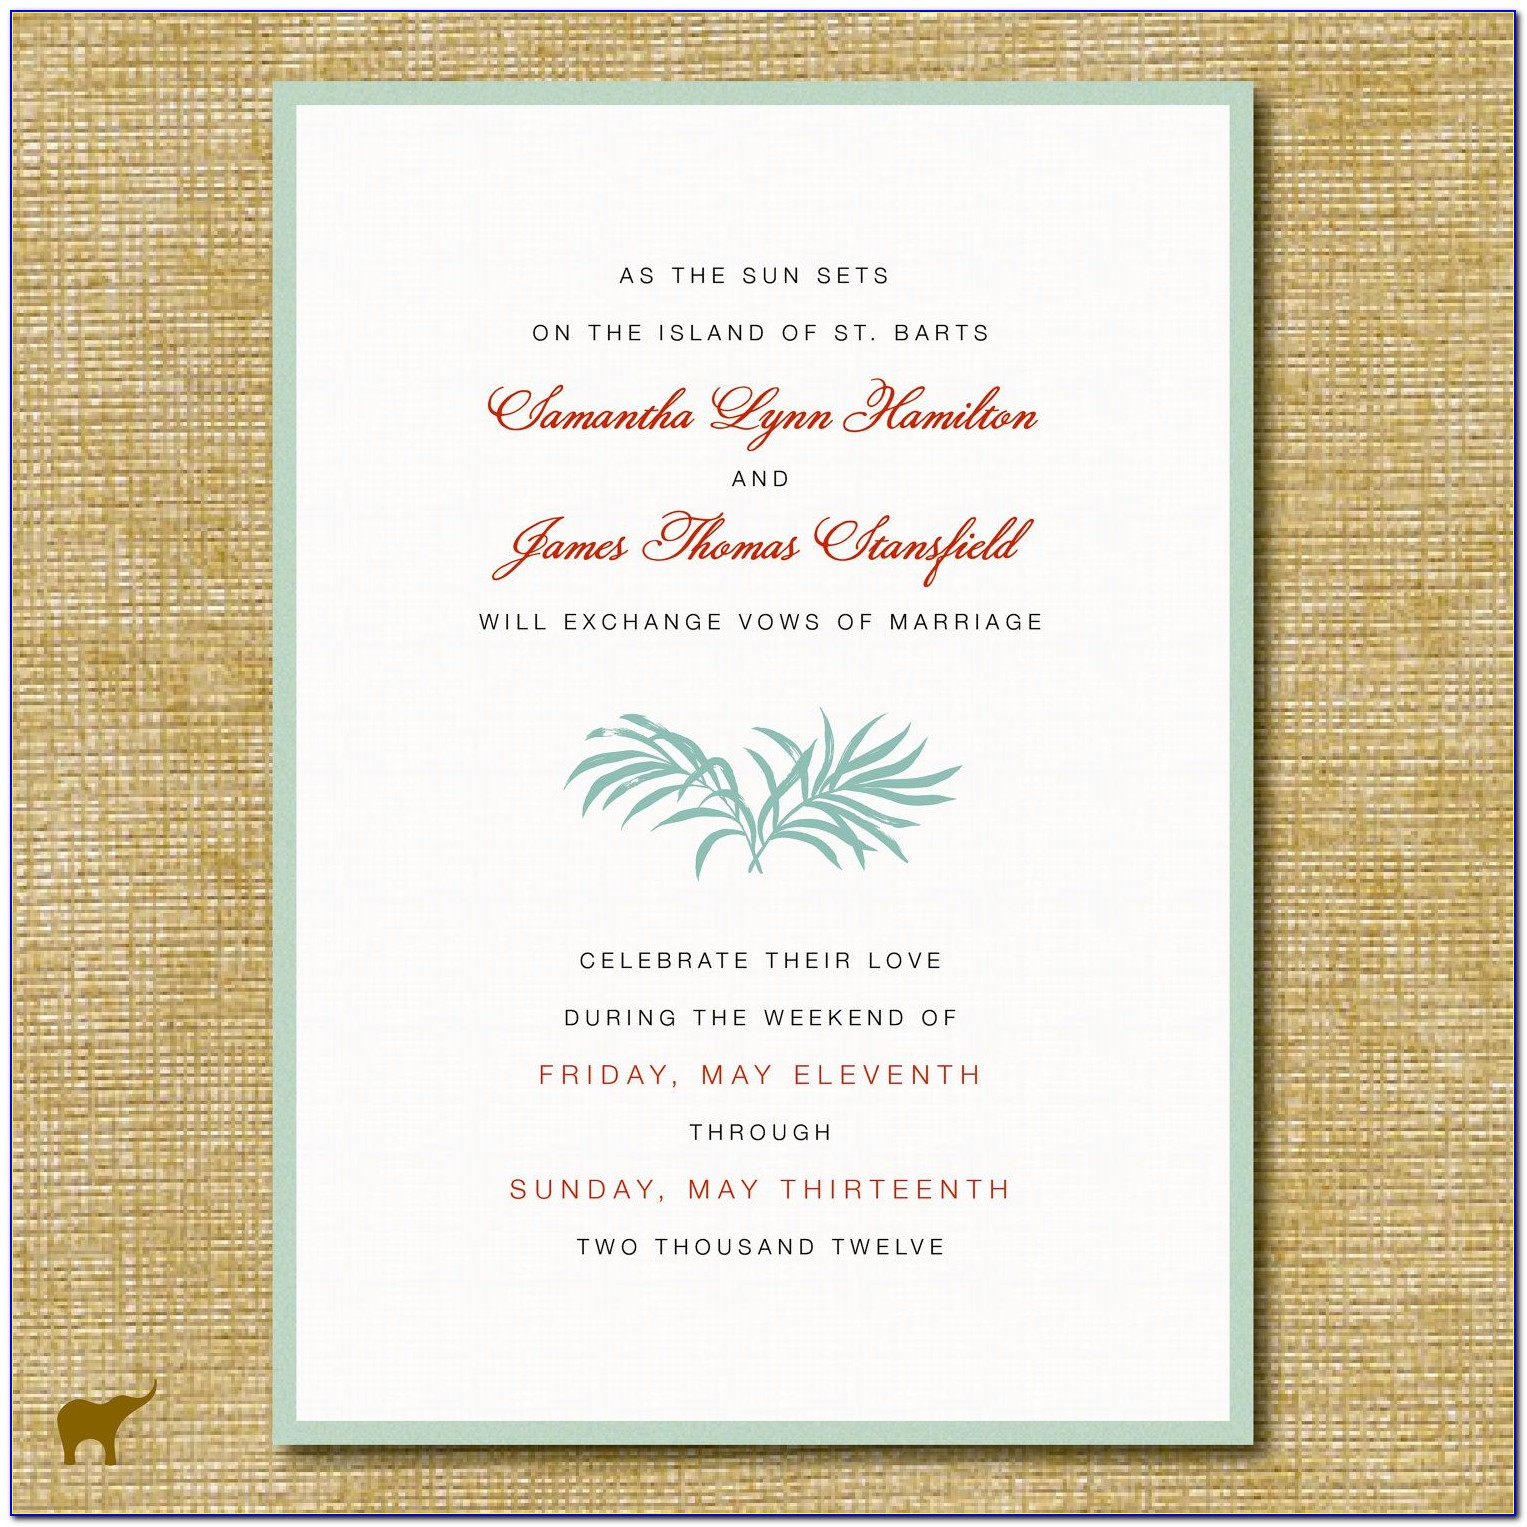 Wedding Card Wording In English In Indian Style